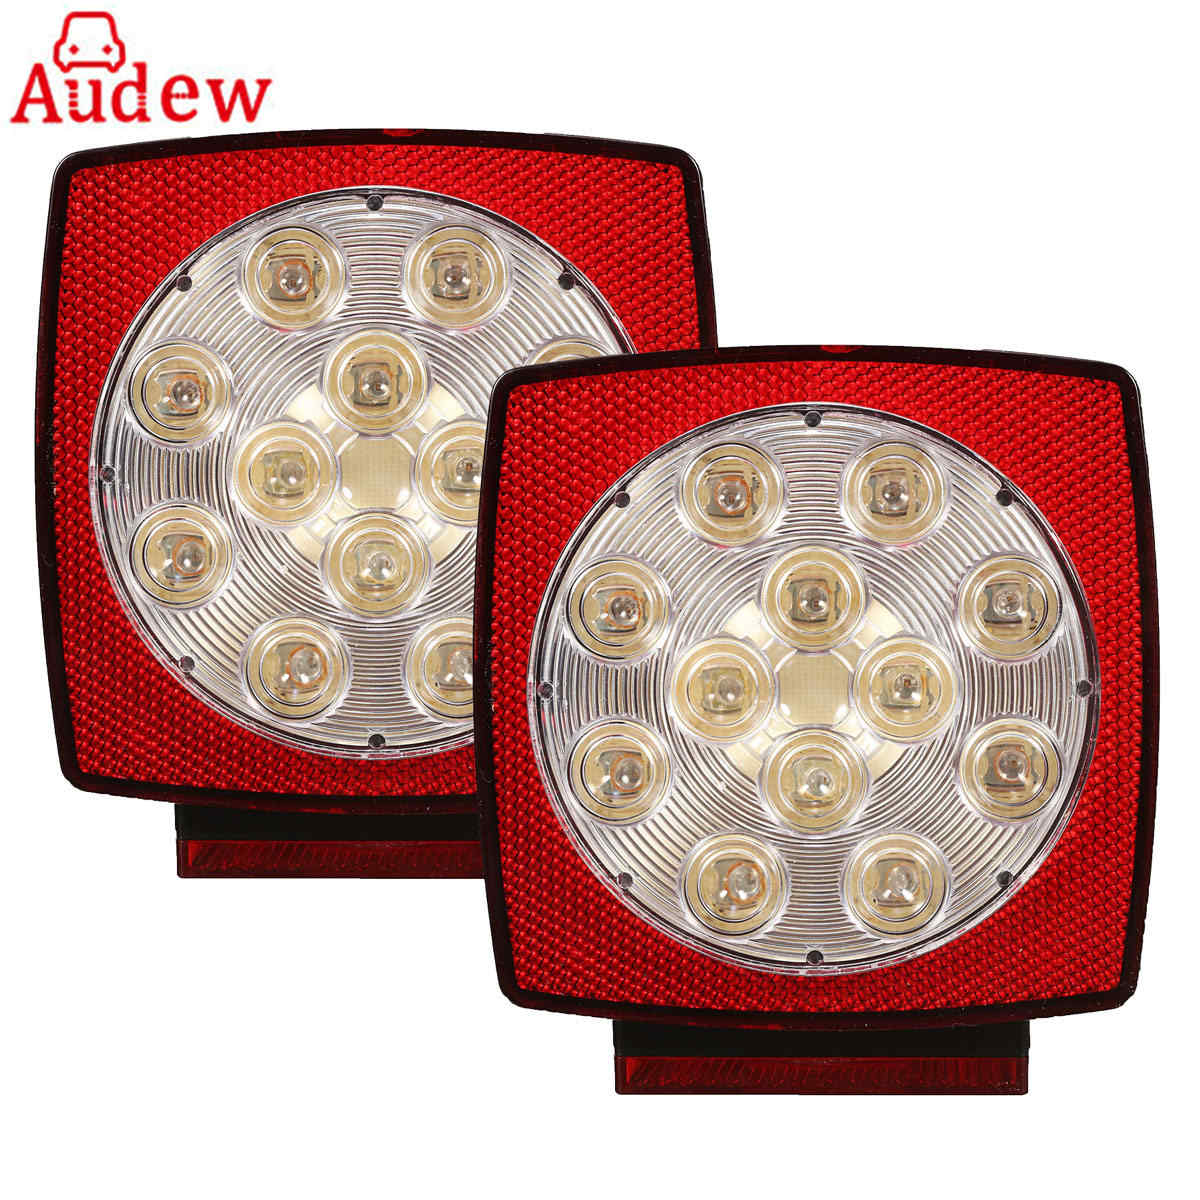 2Pcs LED Truck Car Rear Tail Stop Lihgt Lamp With License Plate Light  For Vehicle Boat Red & White vehemo brake stop light lamp led license plate rear lamp tail round motorcycle red